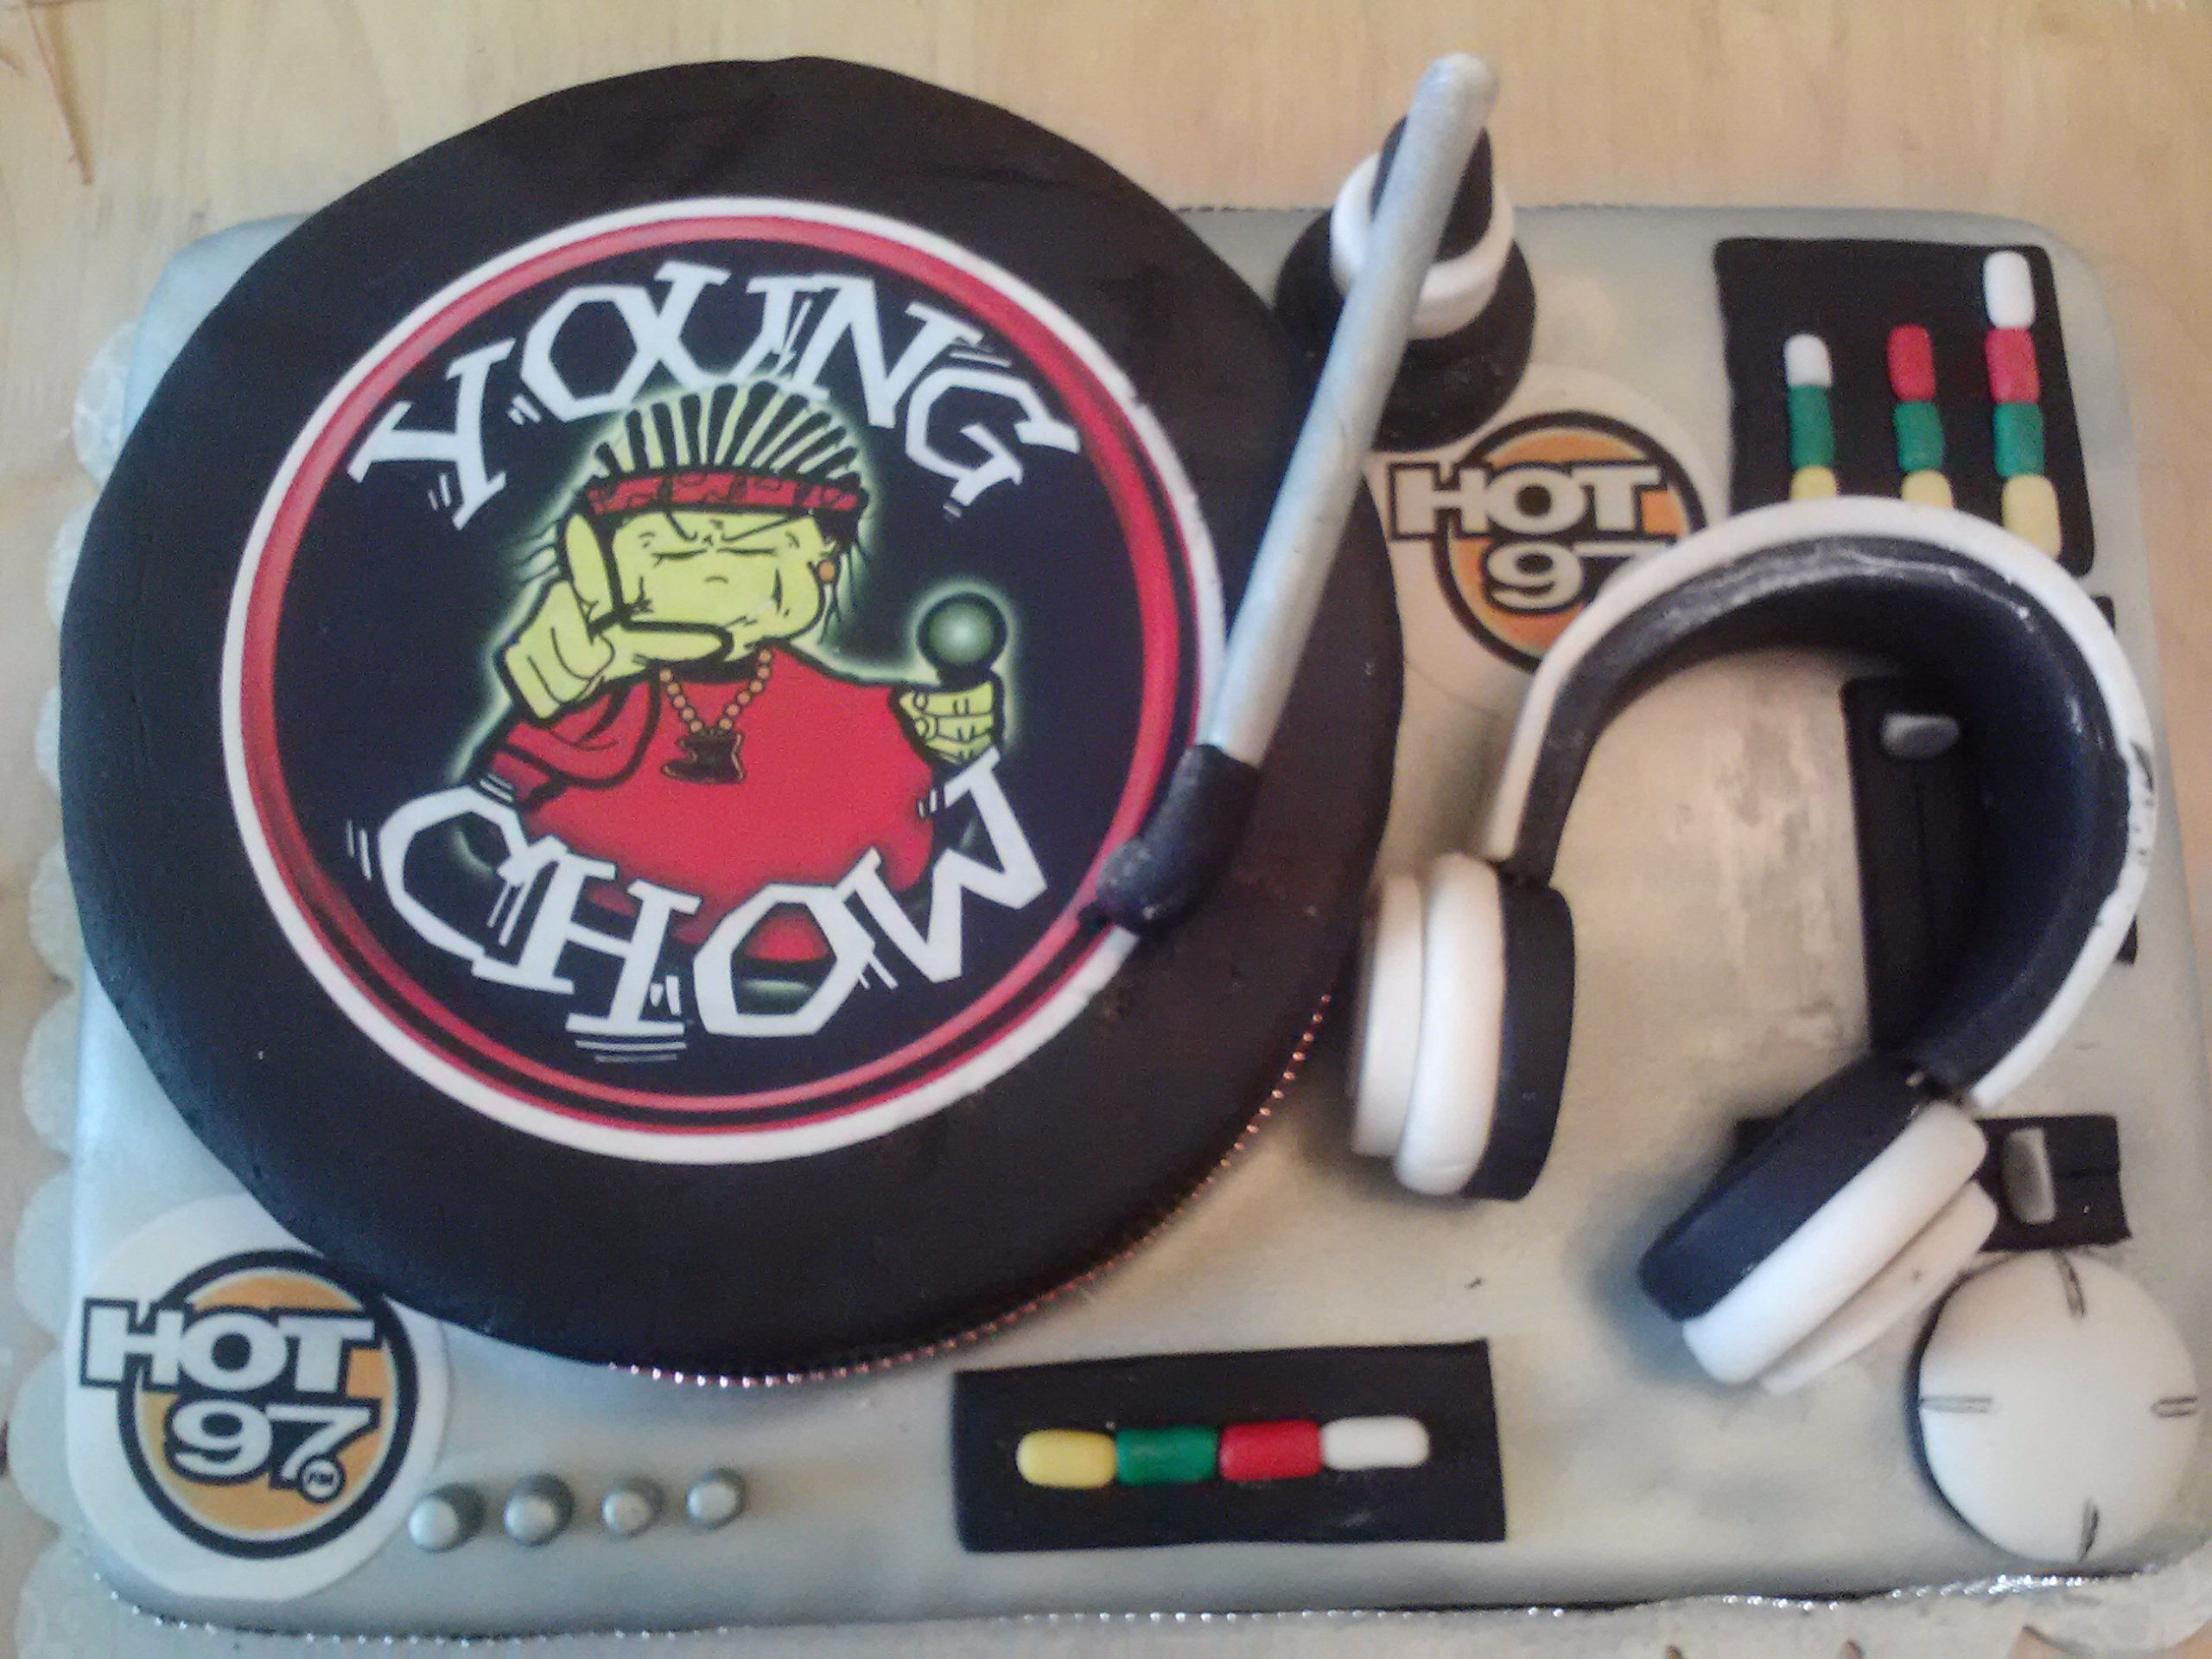 DJ Young Chow Turntable Cake created by Cakes by Violet with spinning record! watch it spin on youtube http://youtu.be/yZZrc9aO8ho